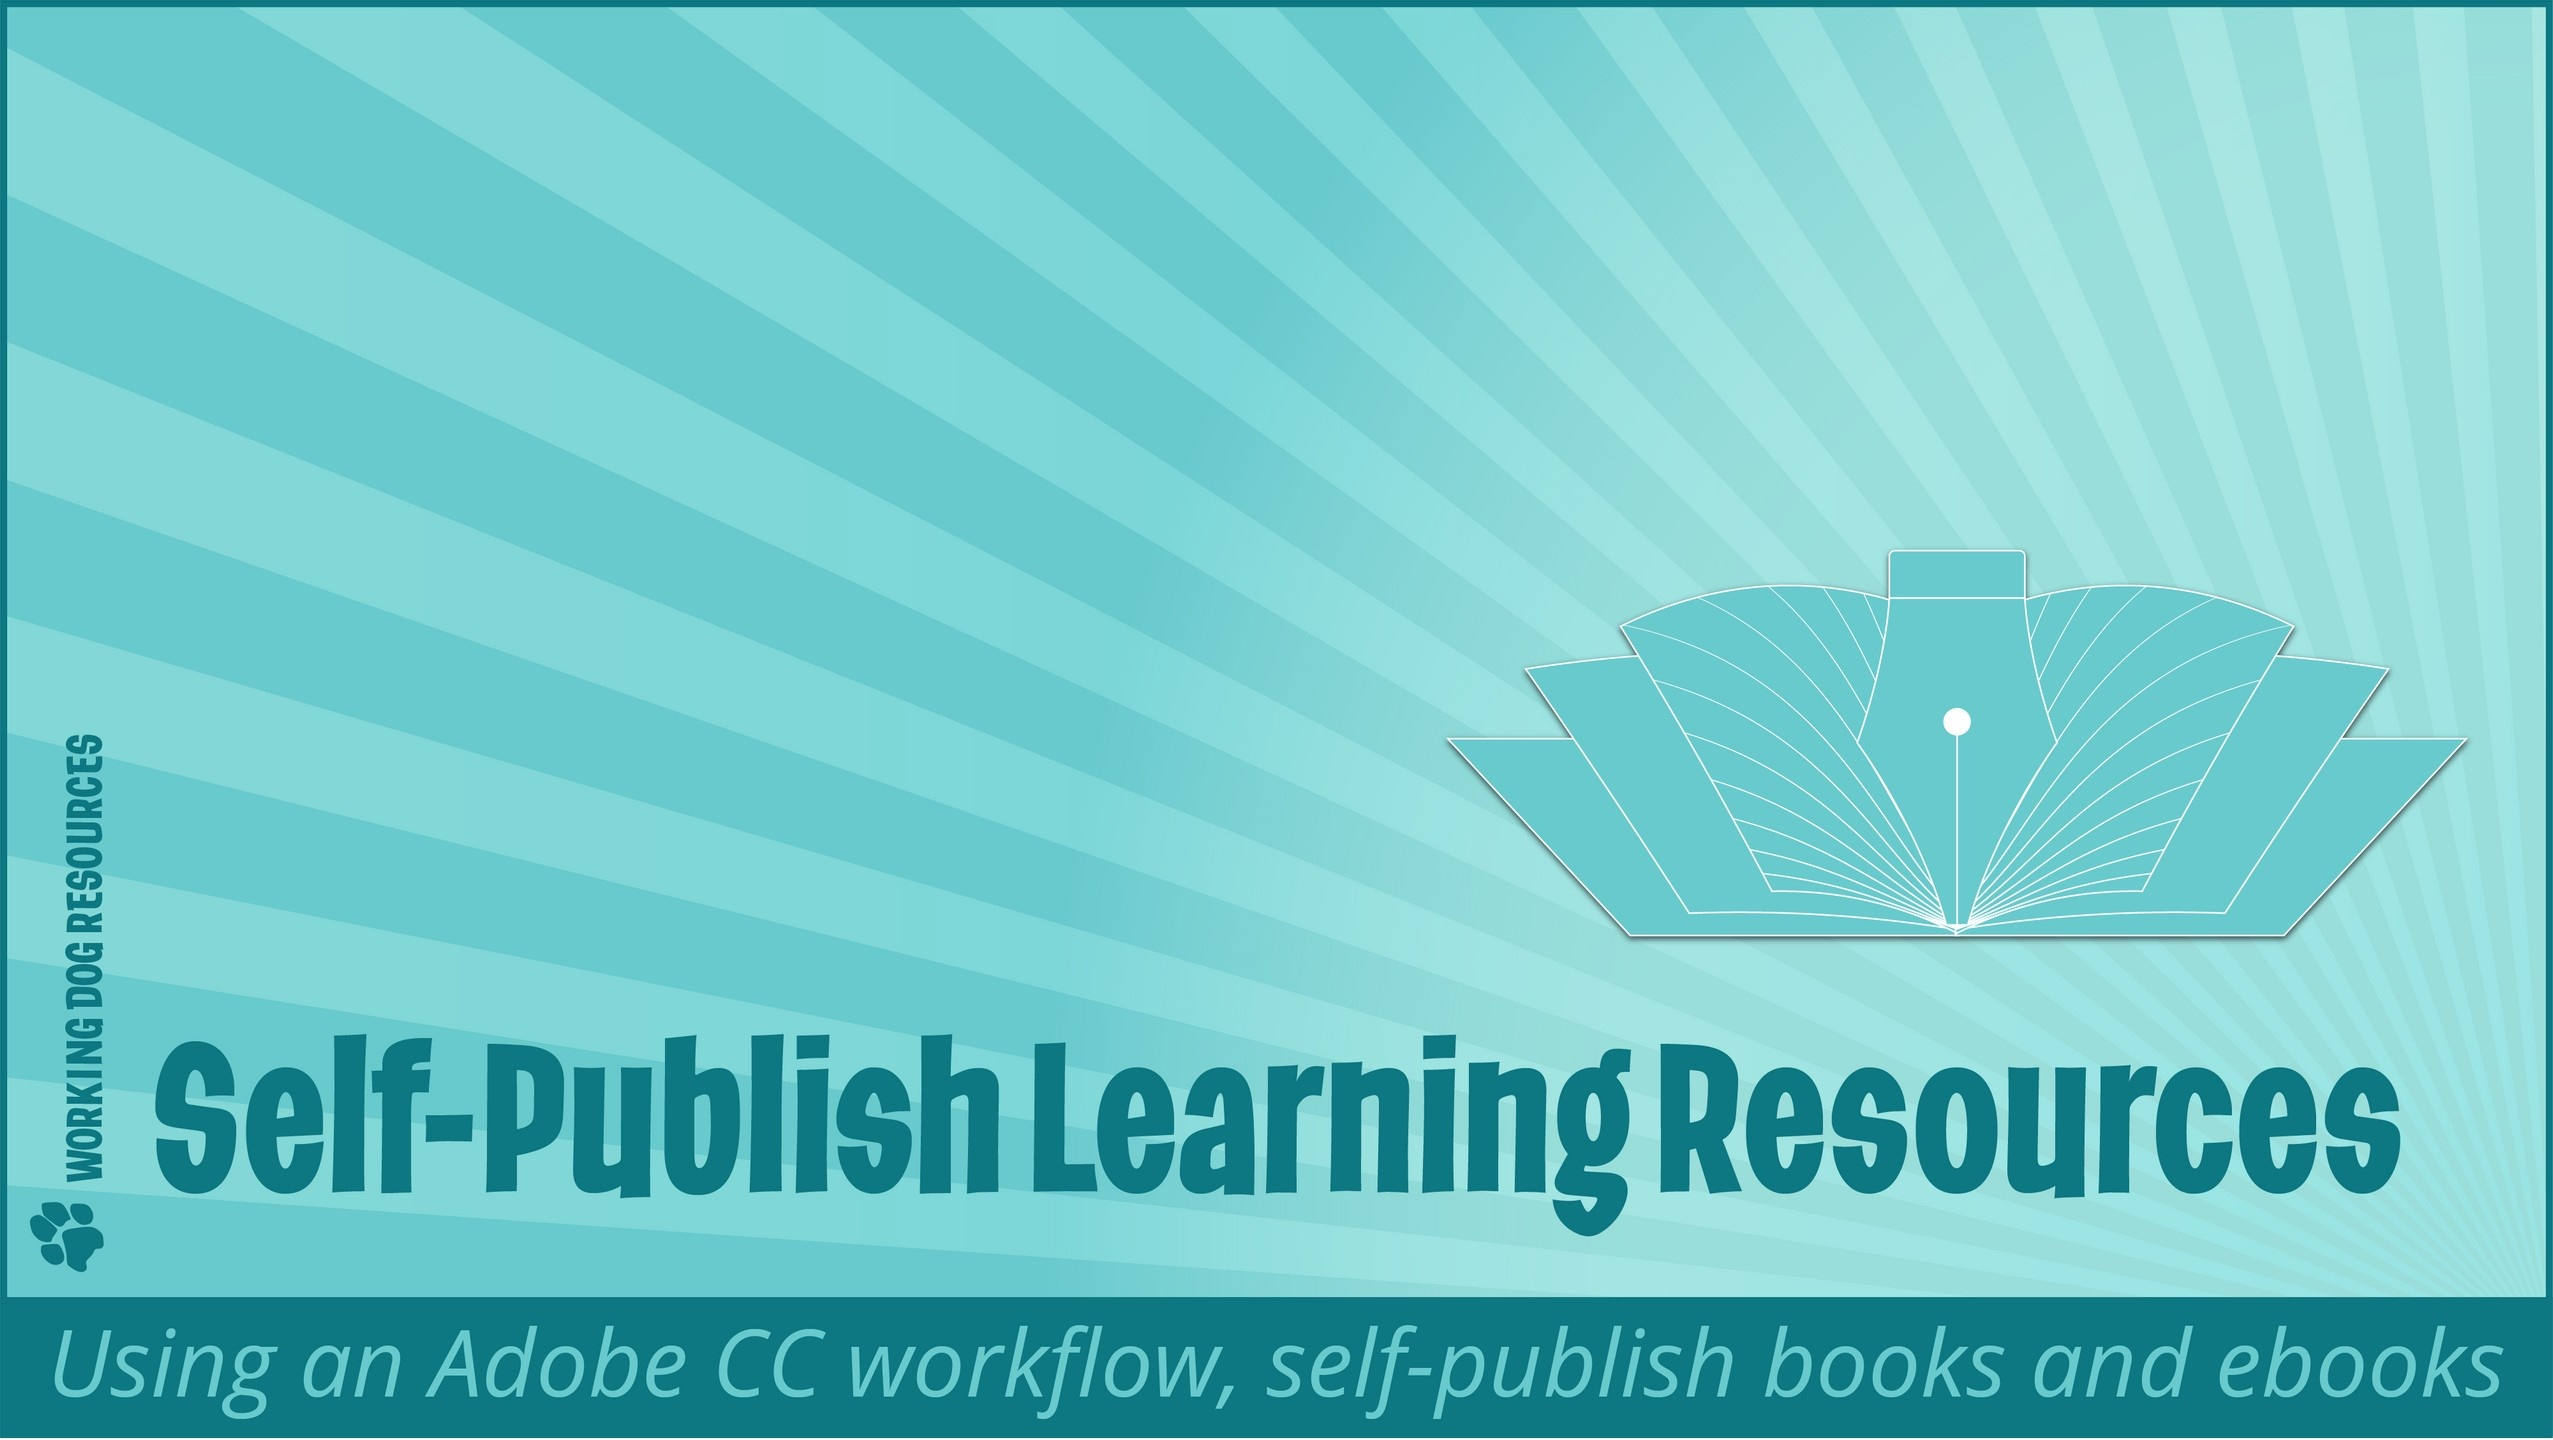 How to self publish learning resources